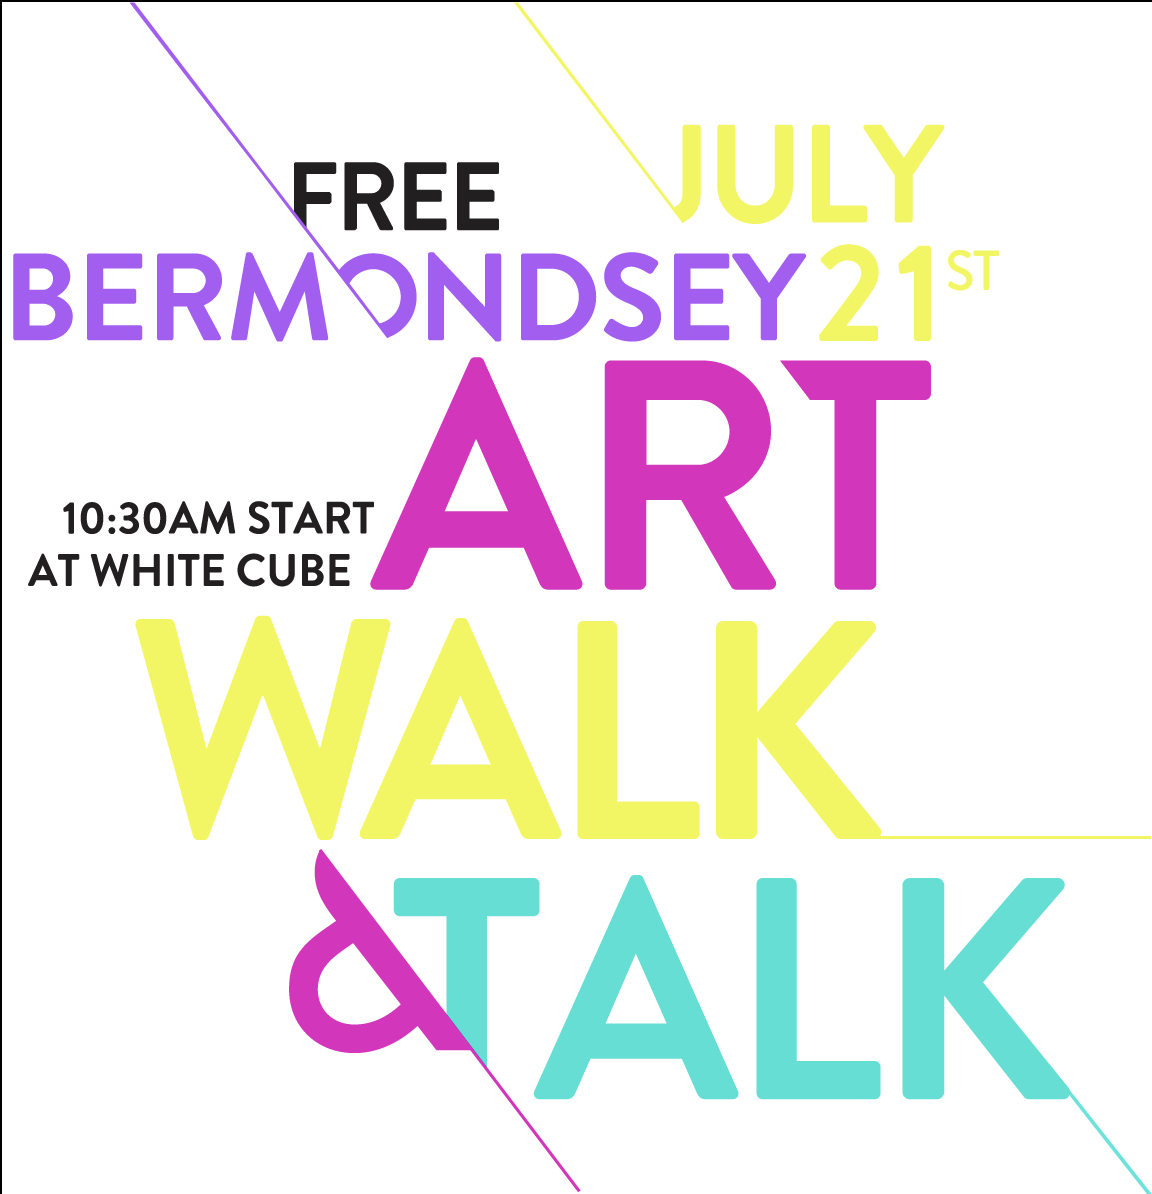 Bermondsey Art Walk & Talk